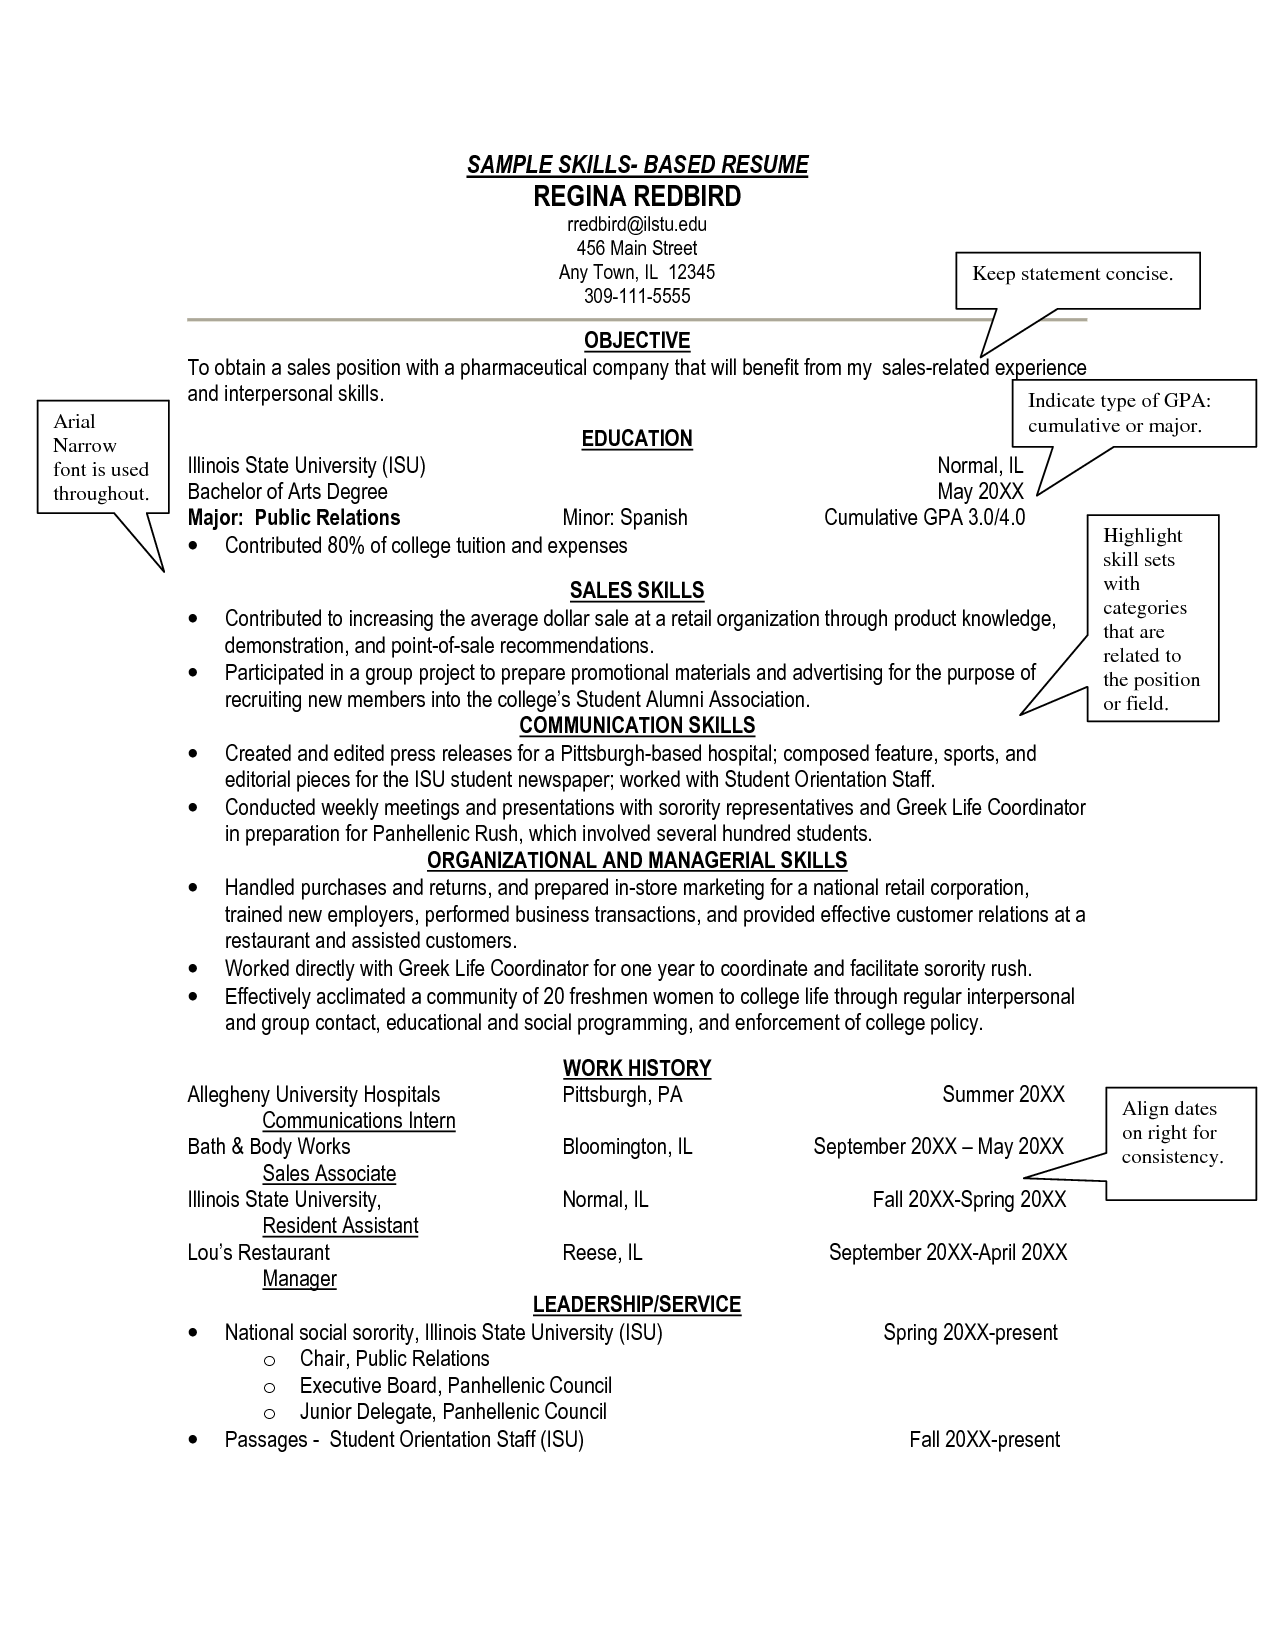 Areas Of Expertise Resume Examples Sample Skills Resume Template  Interview  Pinterest  Sample .